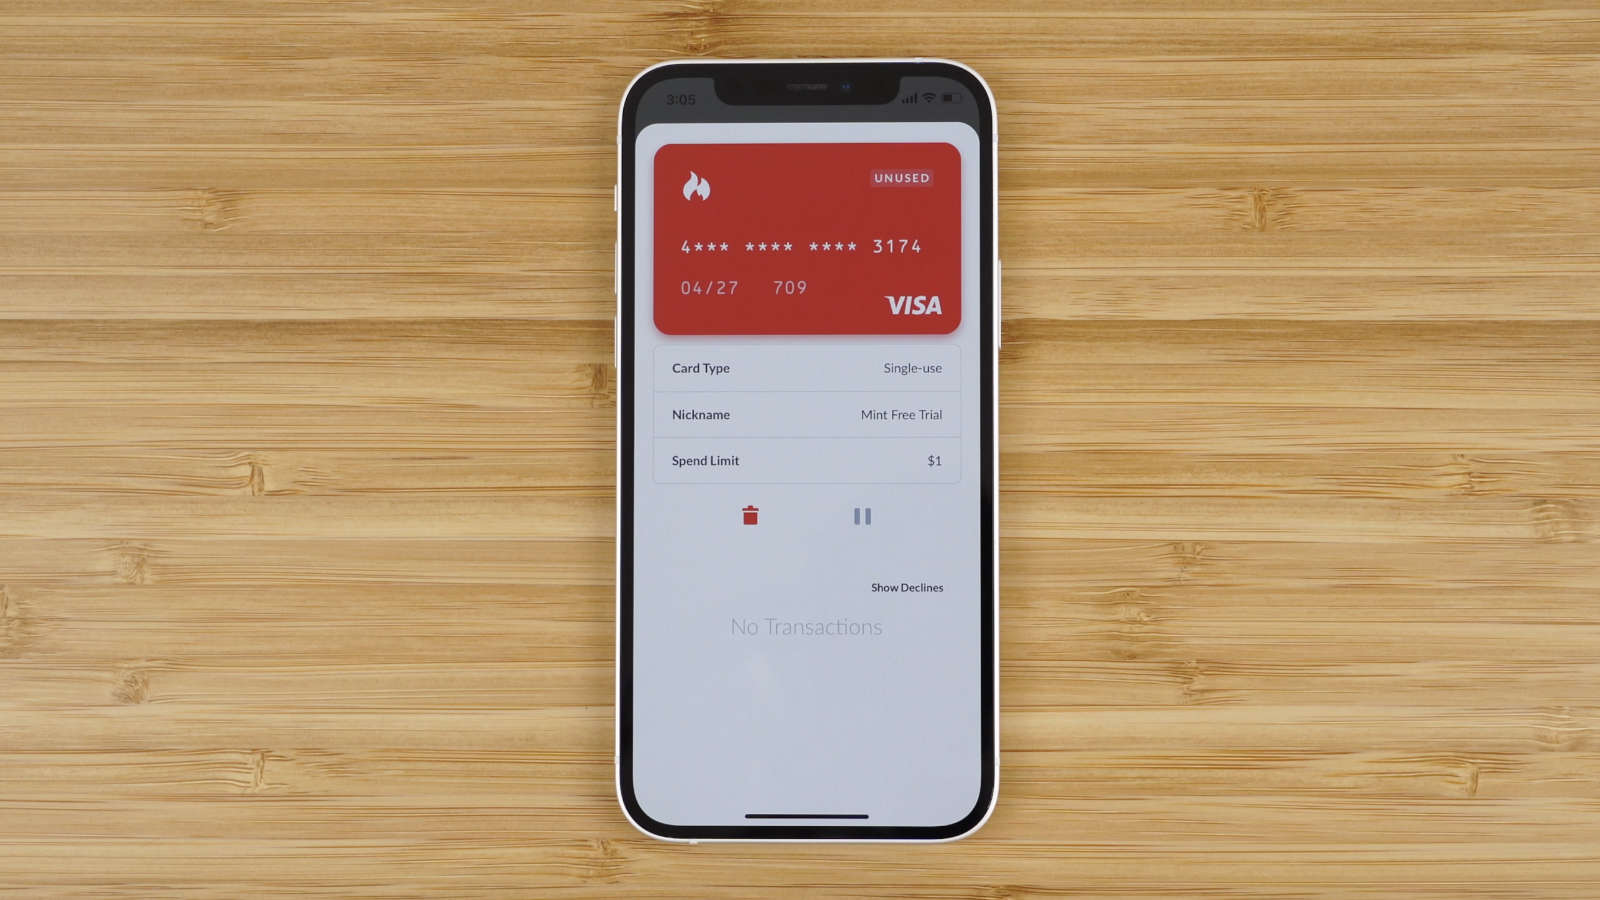 use a virtual credit card from Privacy.com to help make sure you are not over charged